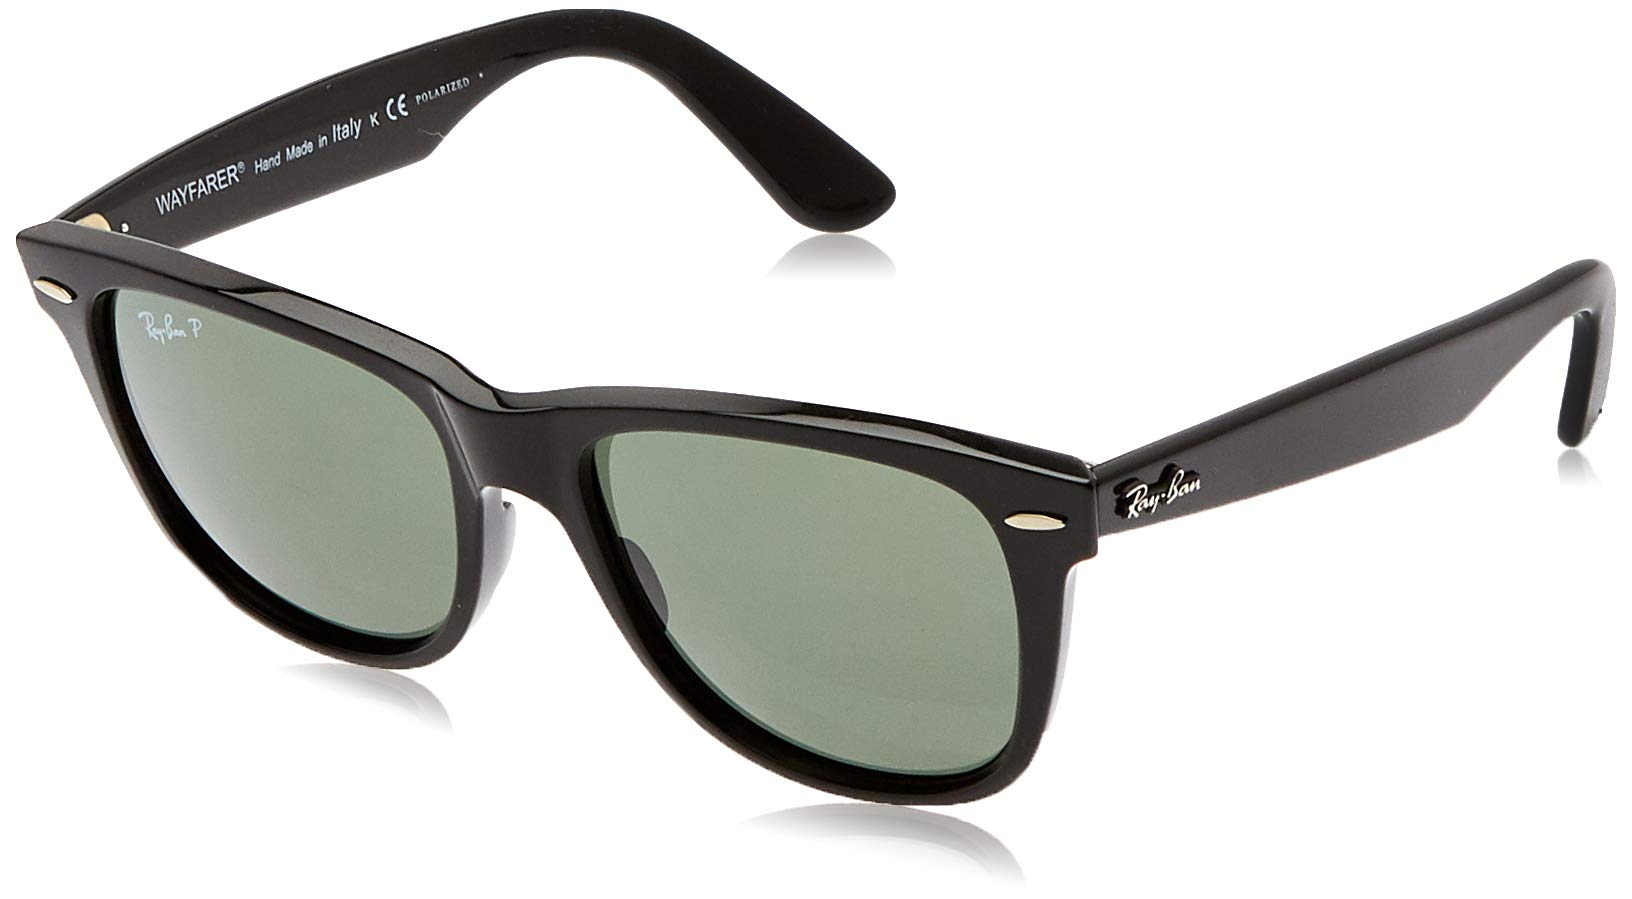 Ray-Ban RB2140 Wayfarer Sunglasses, Black/Polarized Green, 54 mm by RAY-BAN